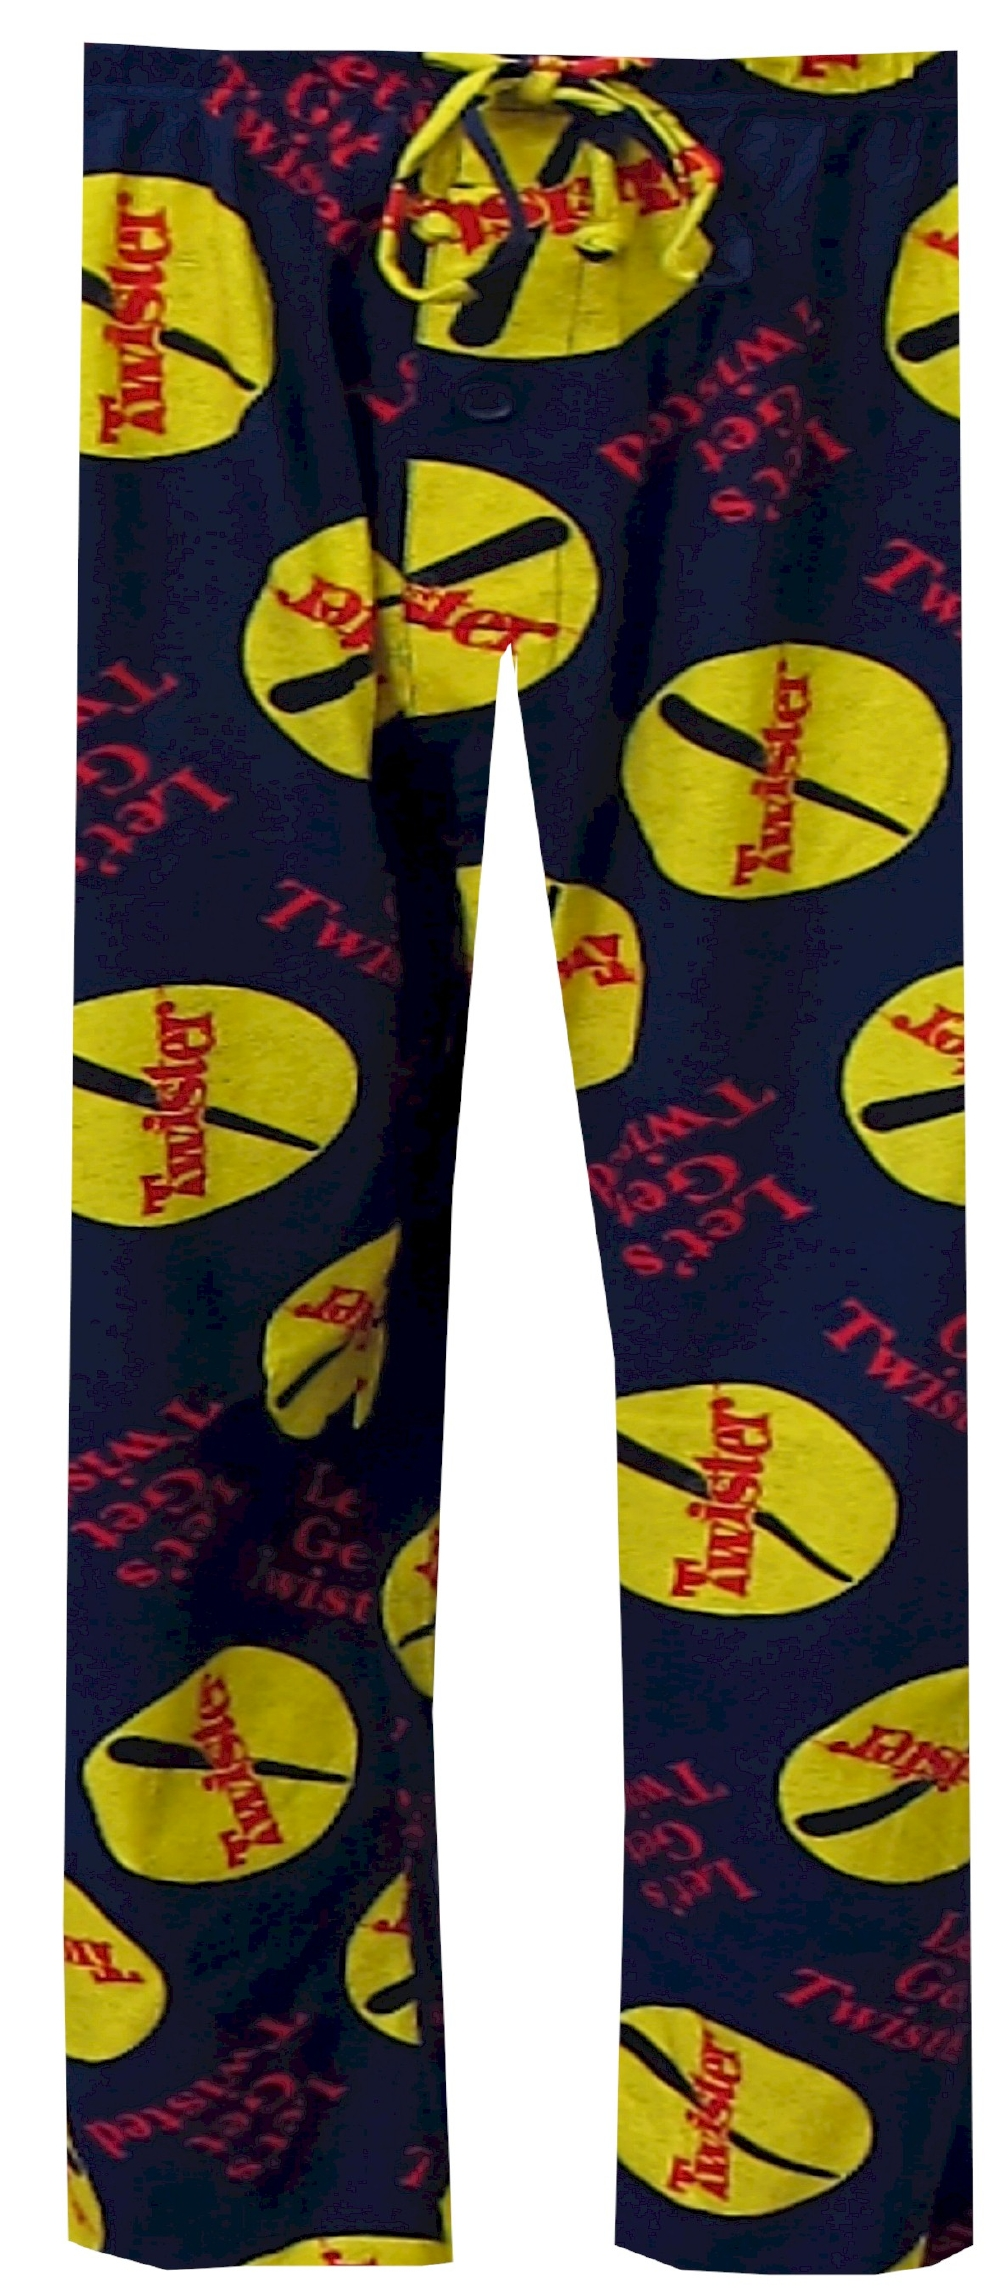 Hasbro's Twister Let's Get Twisted Lounge Pants for men